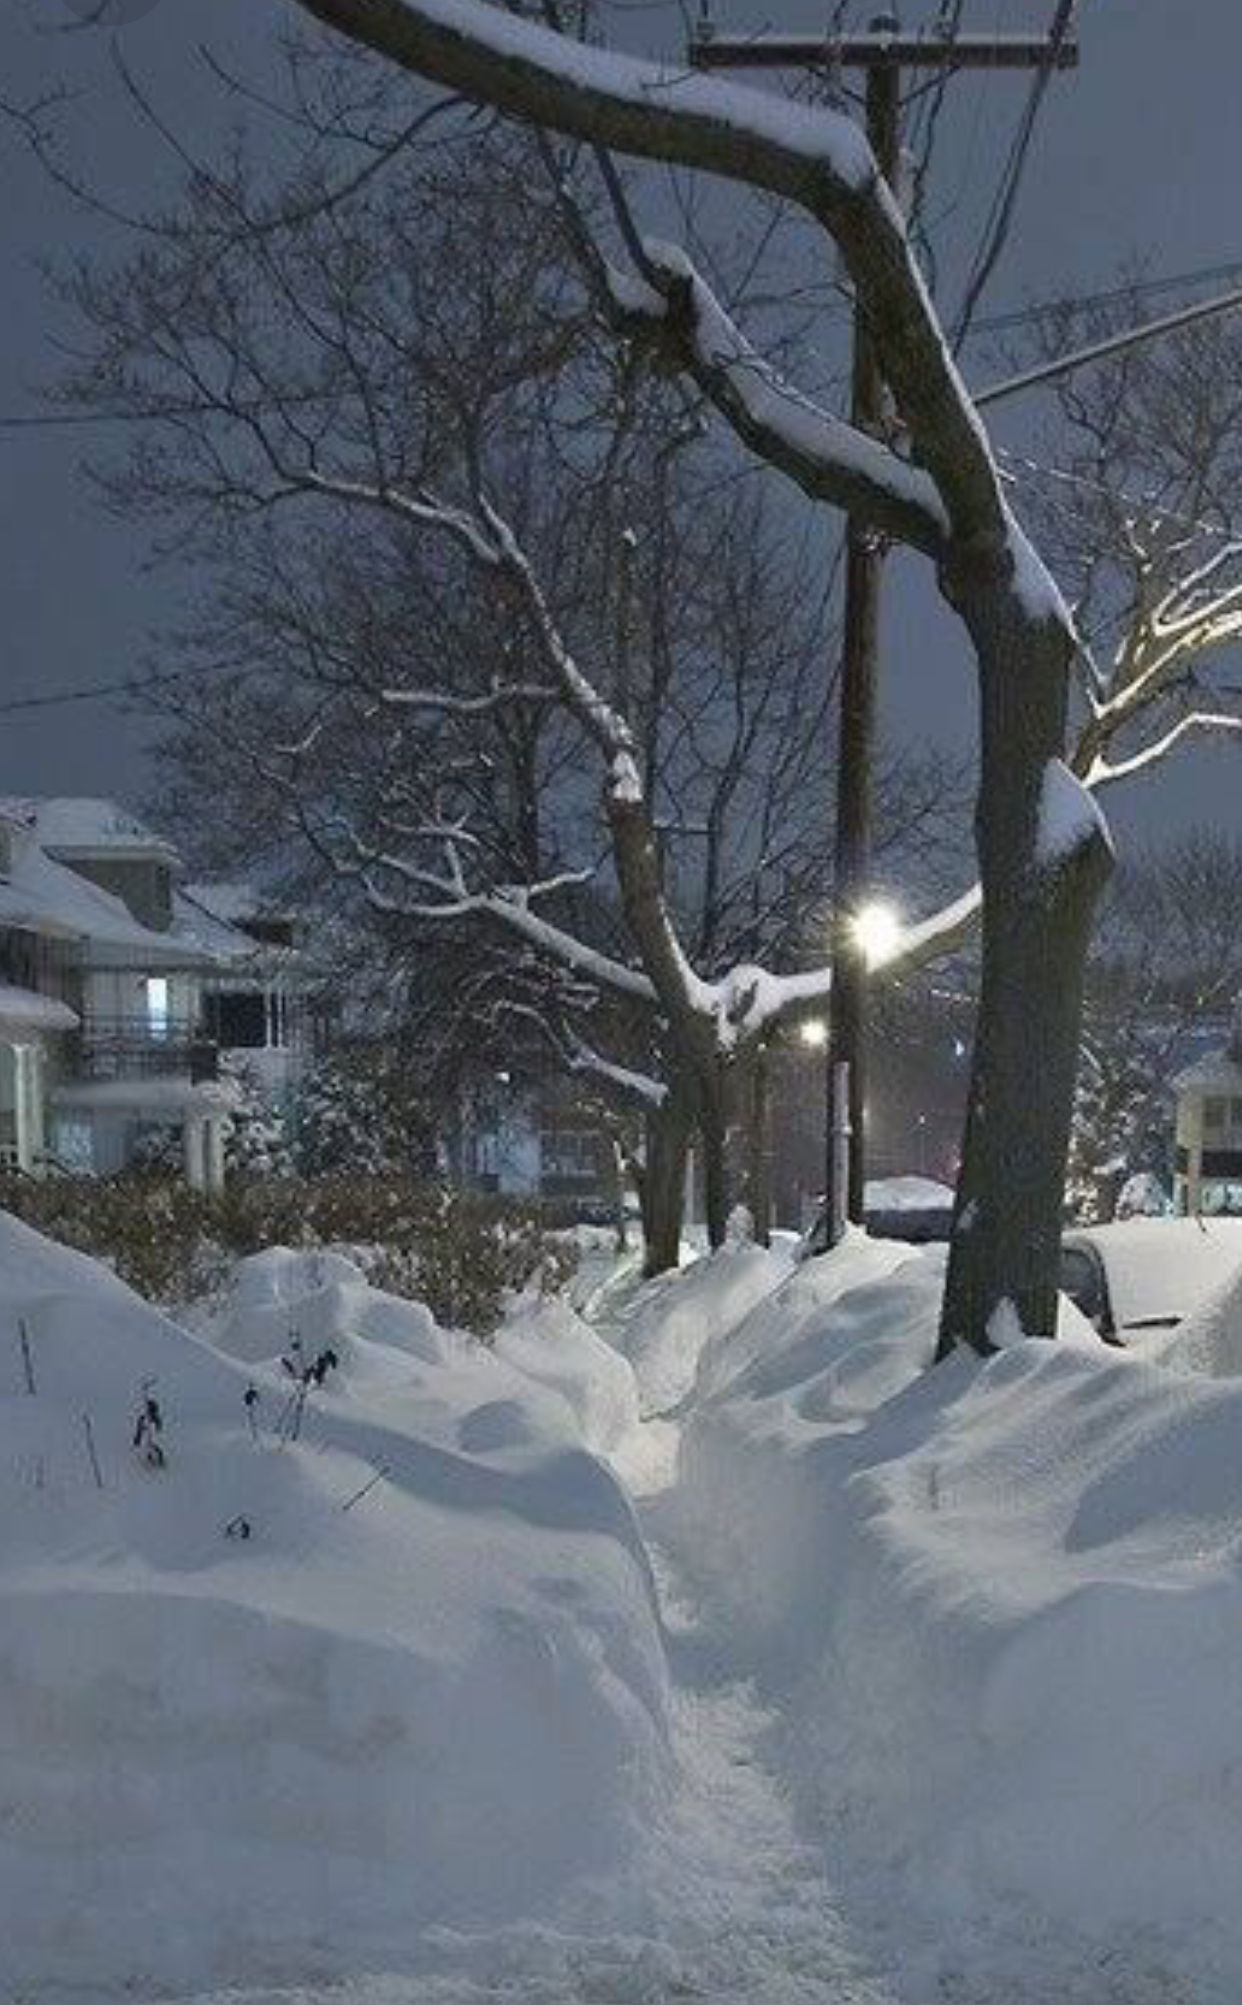 Pin By Diana Vincent On Winter Wonder Lands Winter Scenery Winter Images Winter Landscape